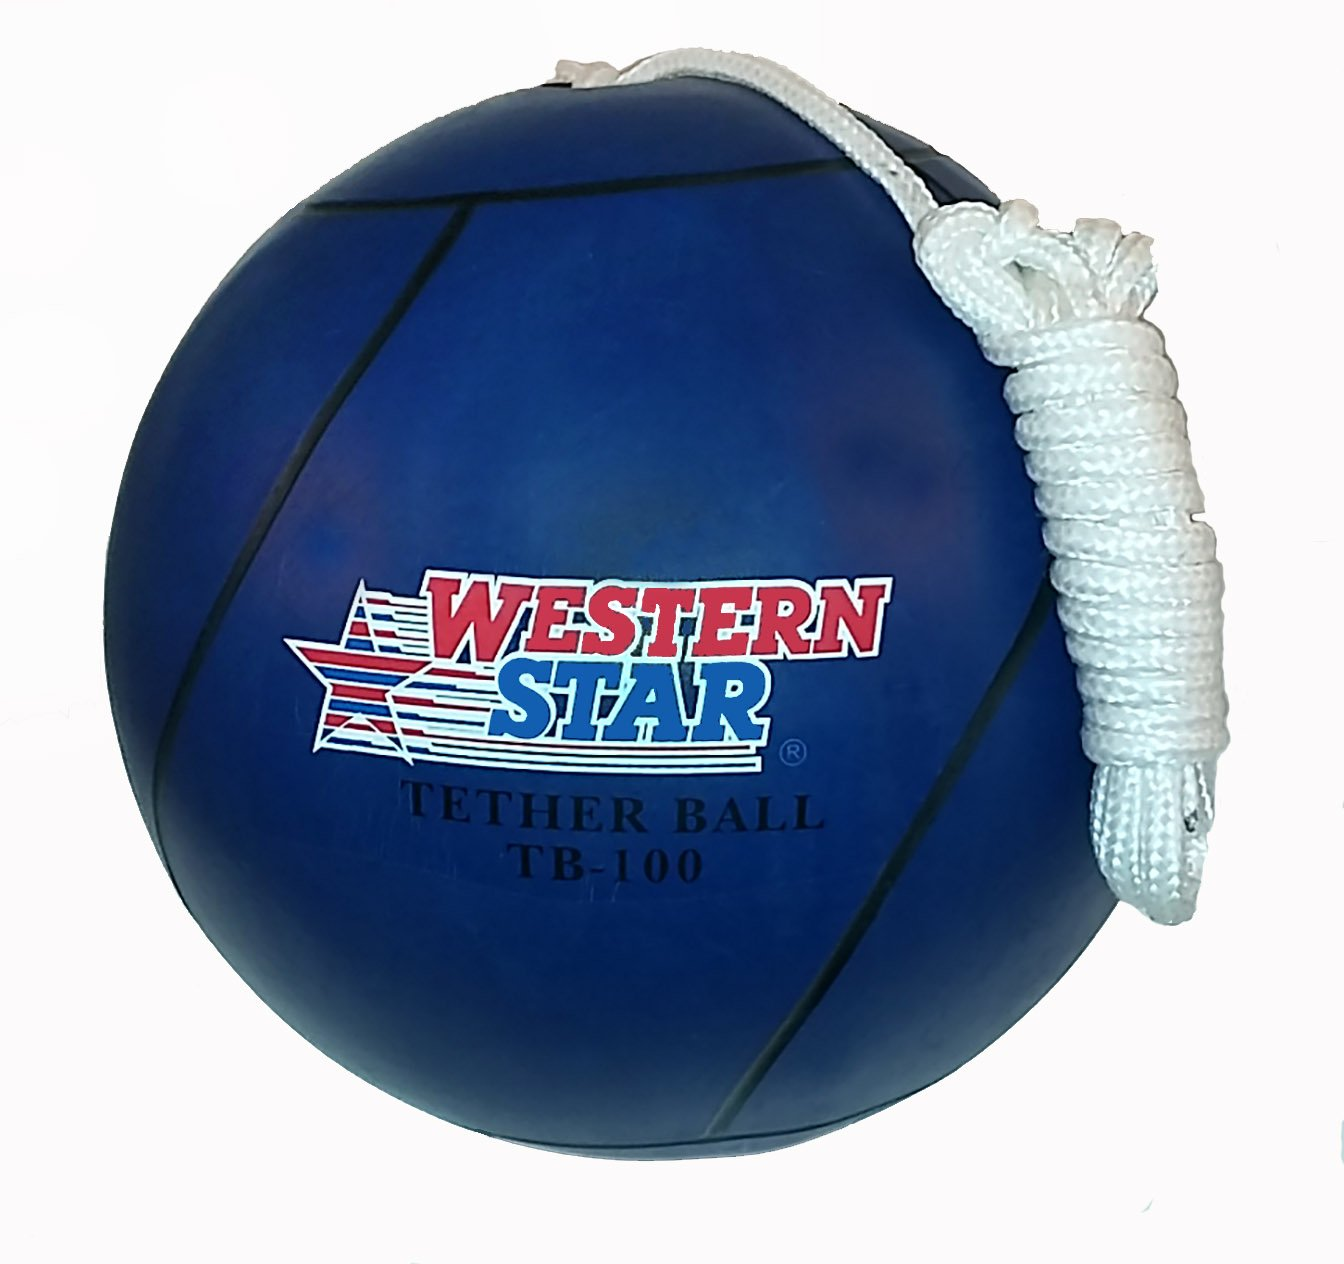 Western Star Blue Tetherball Playground Assorted Colors by Western Star